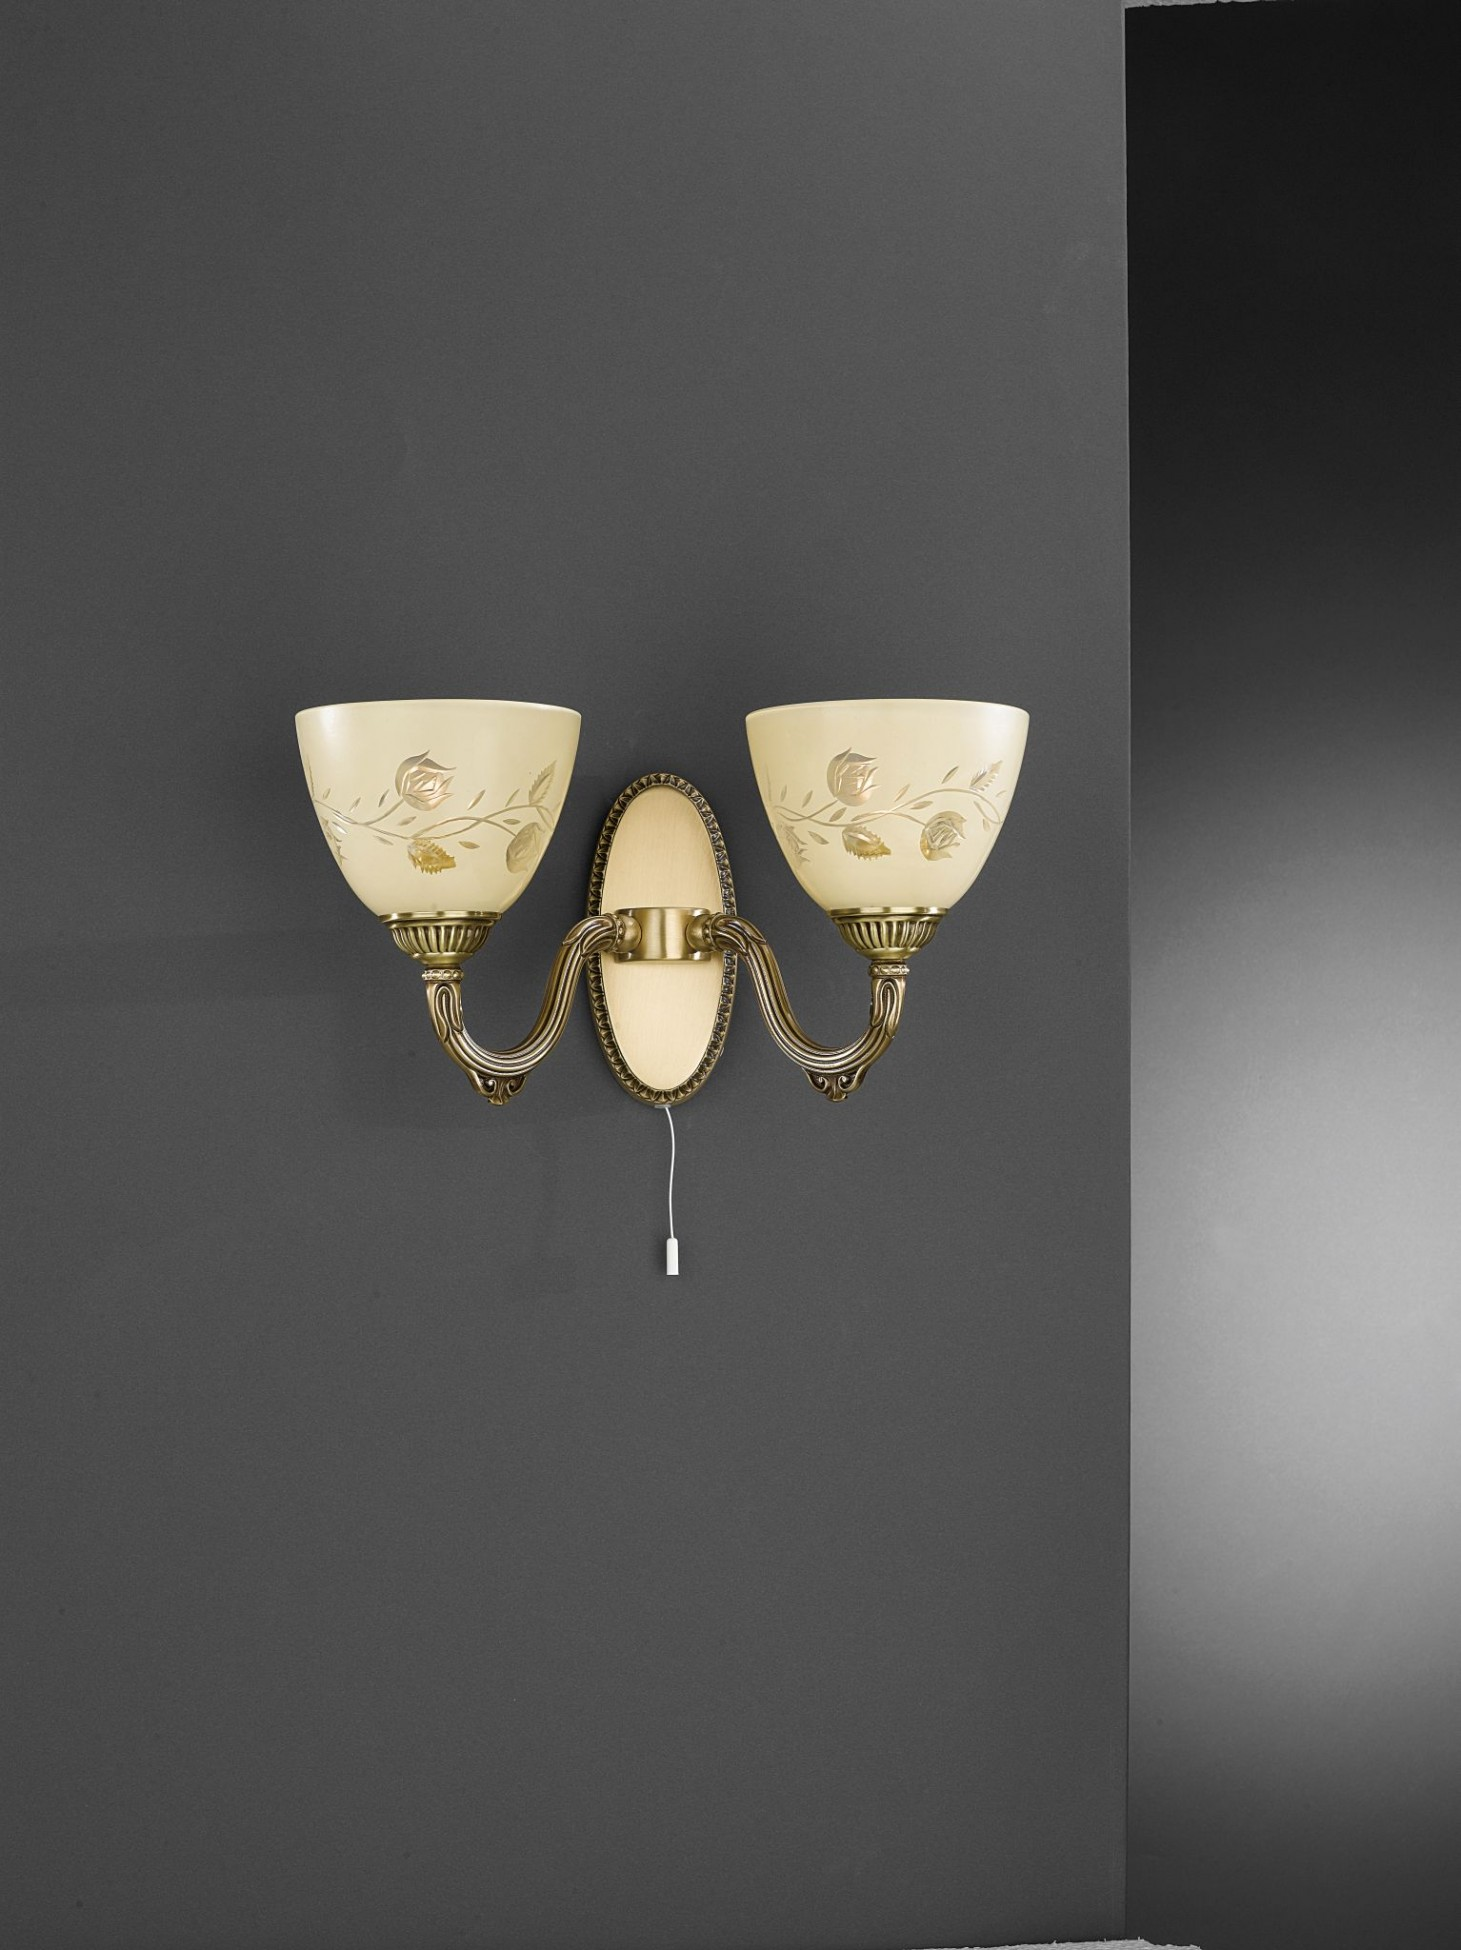 2 Lights Brass Wall Sconce With Cream Glass Facing Upward Reccagni Store